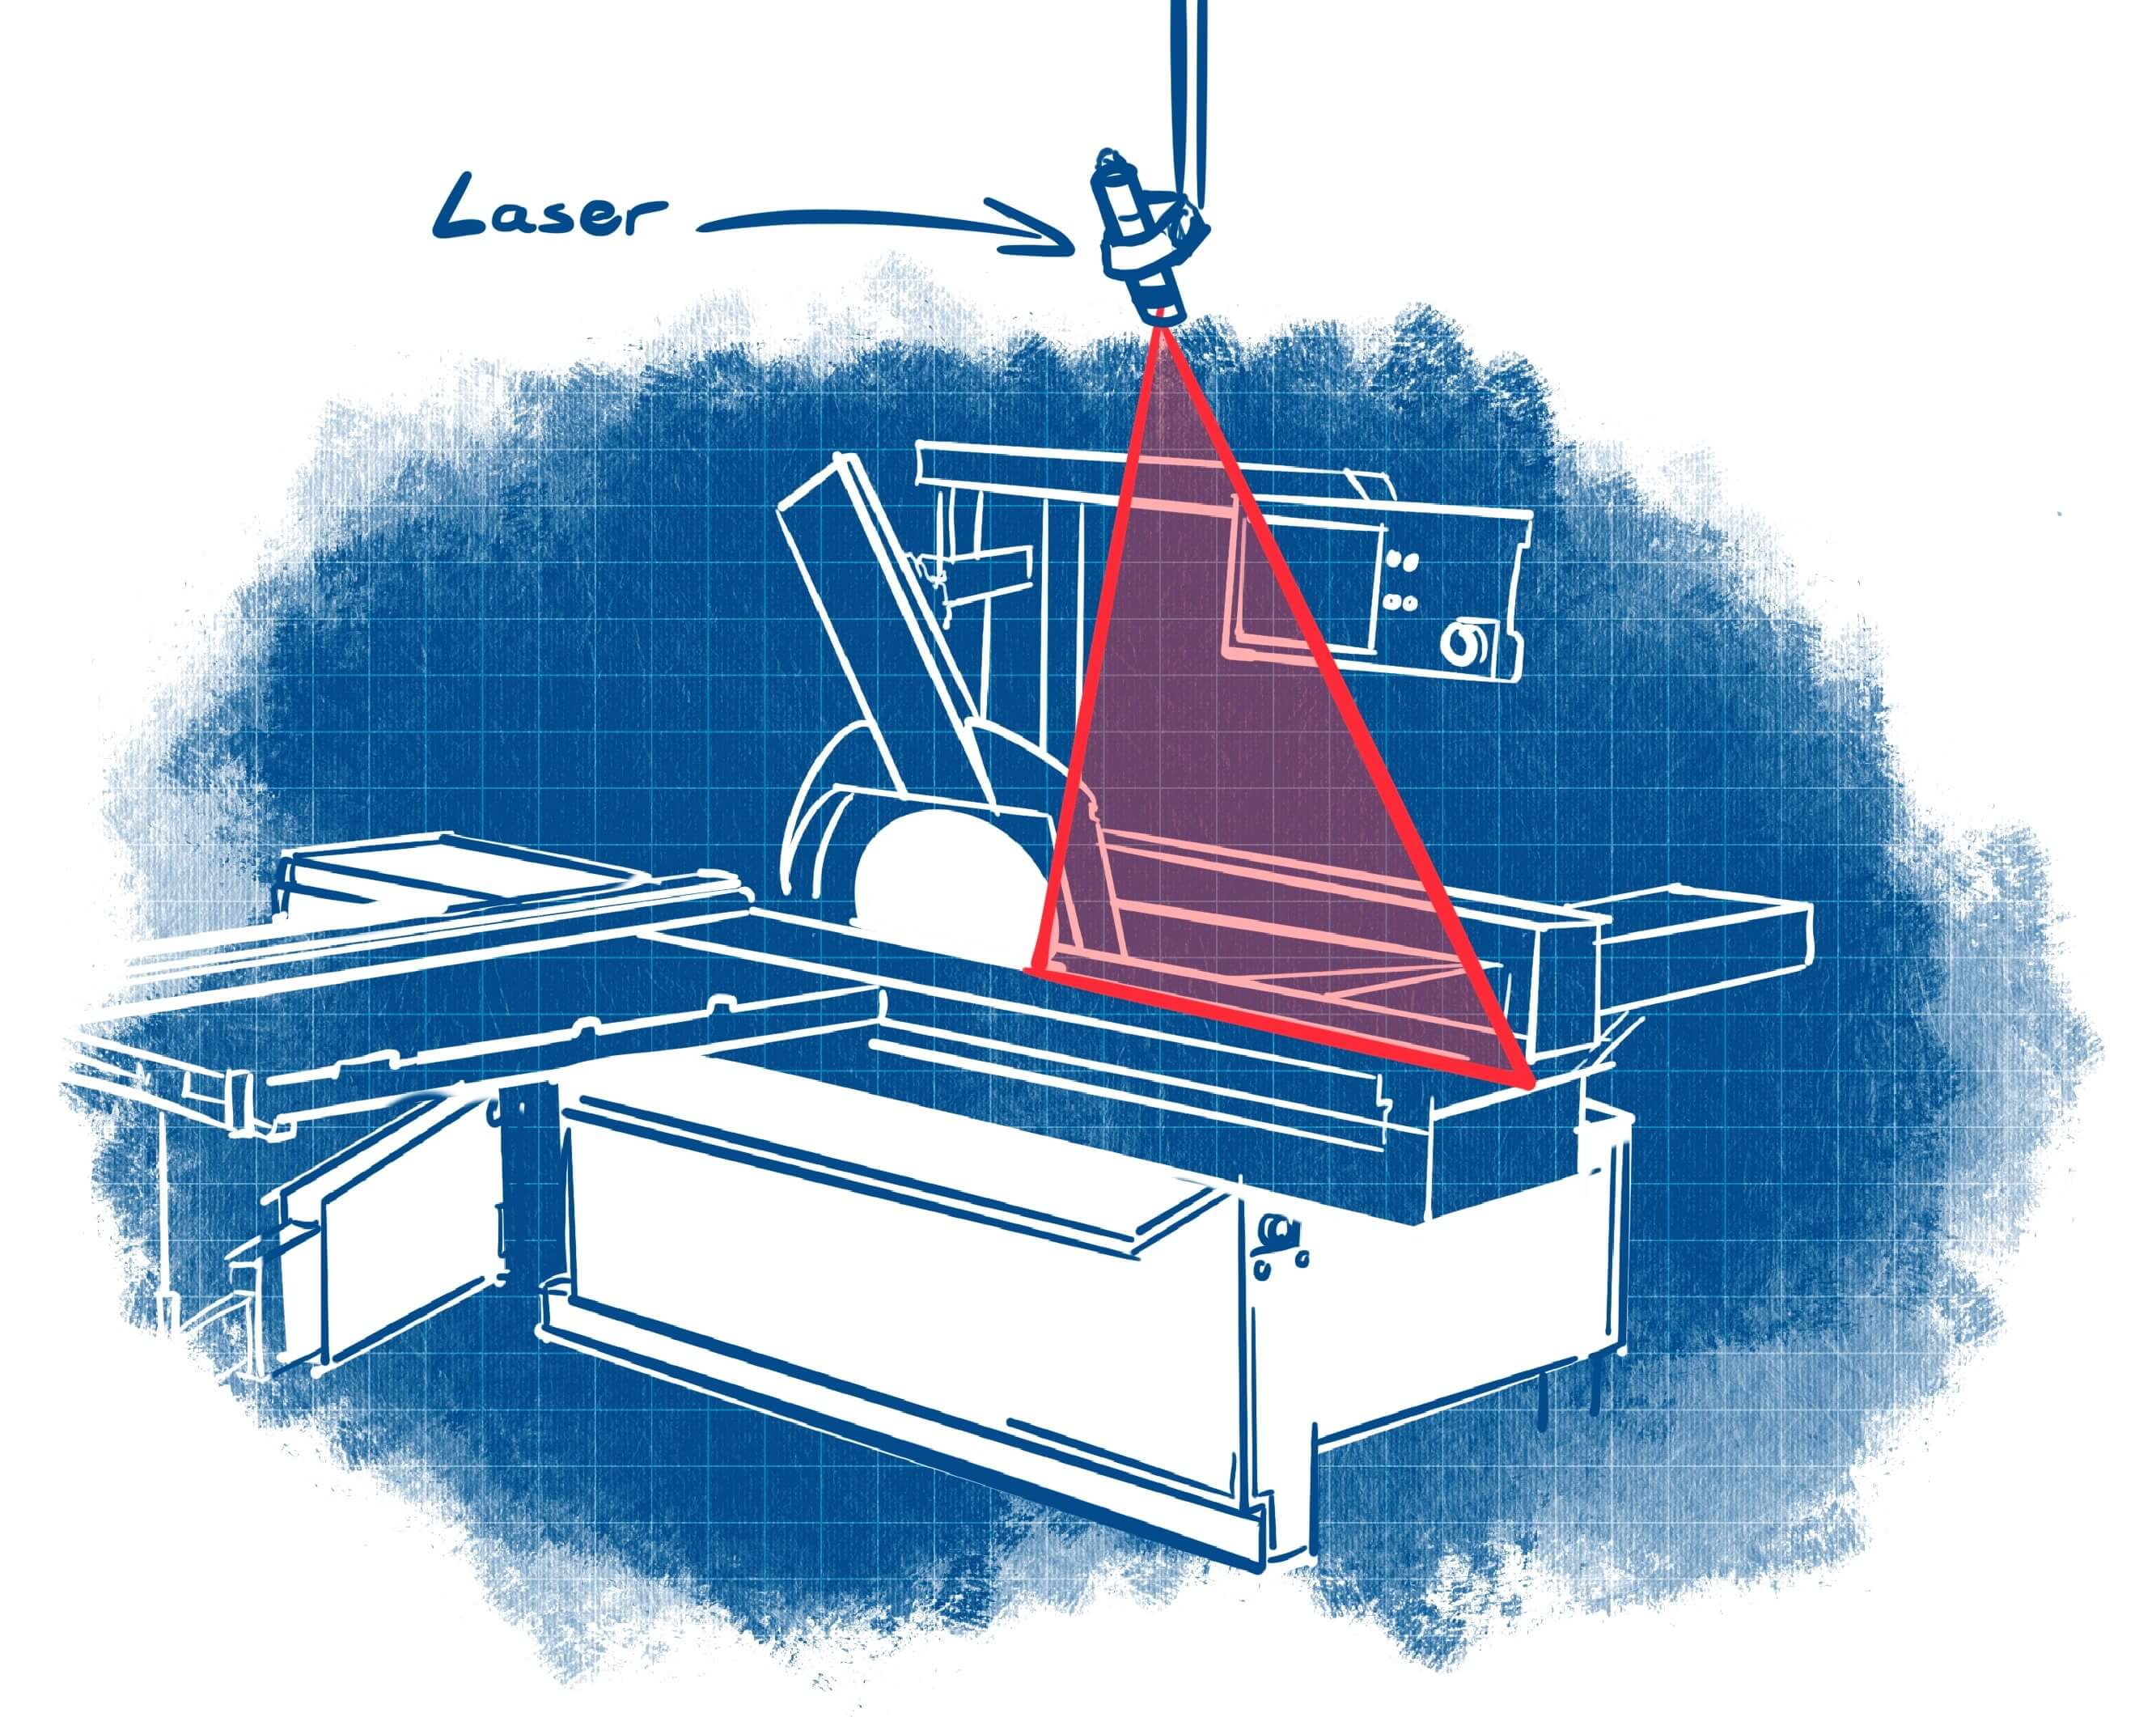 , Line laser action on the sliding table saw